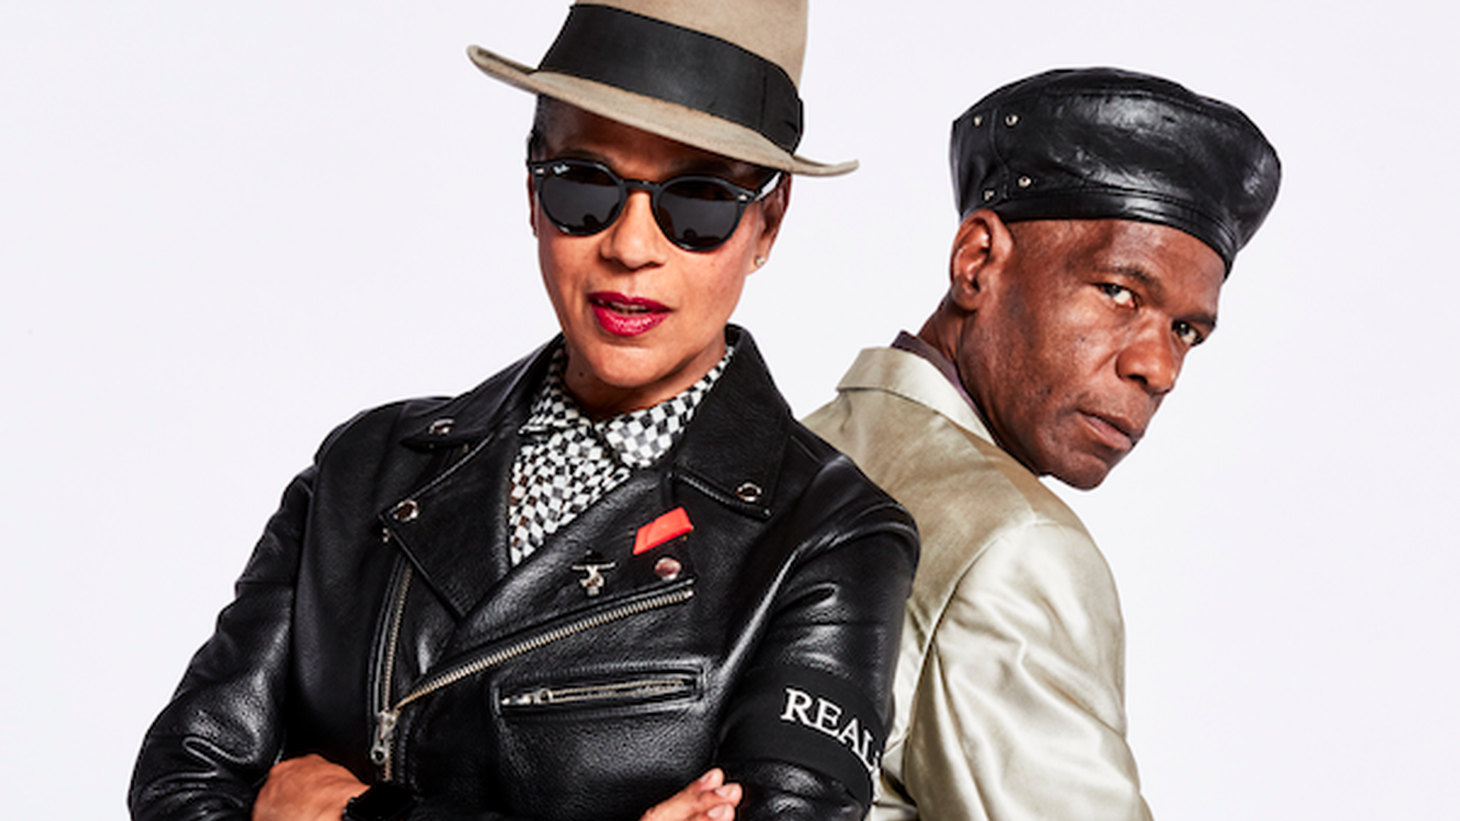 The Selecter were one of the key bands of the U.K. ska revival of the late '70s and early '80s. Led by singer -- and style icon -- Pauline Black, the band will stop by KCRW's studio for a live set during their West Coast tour.